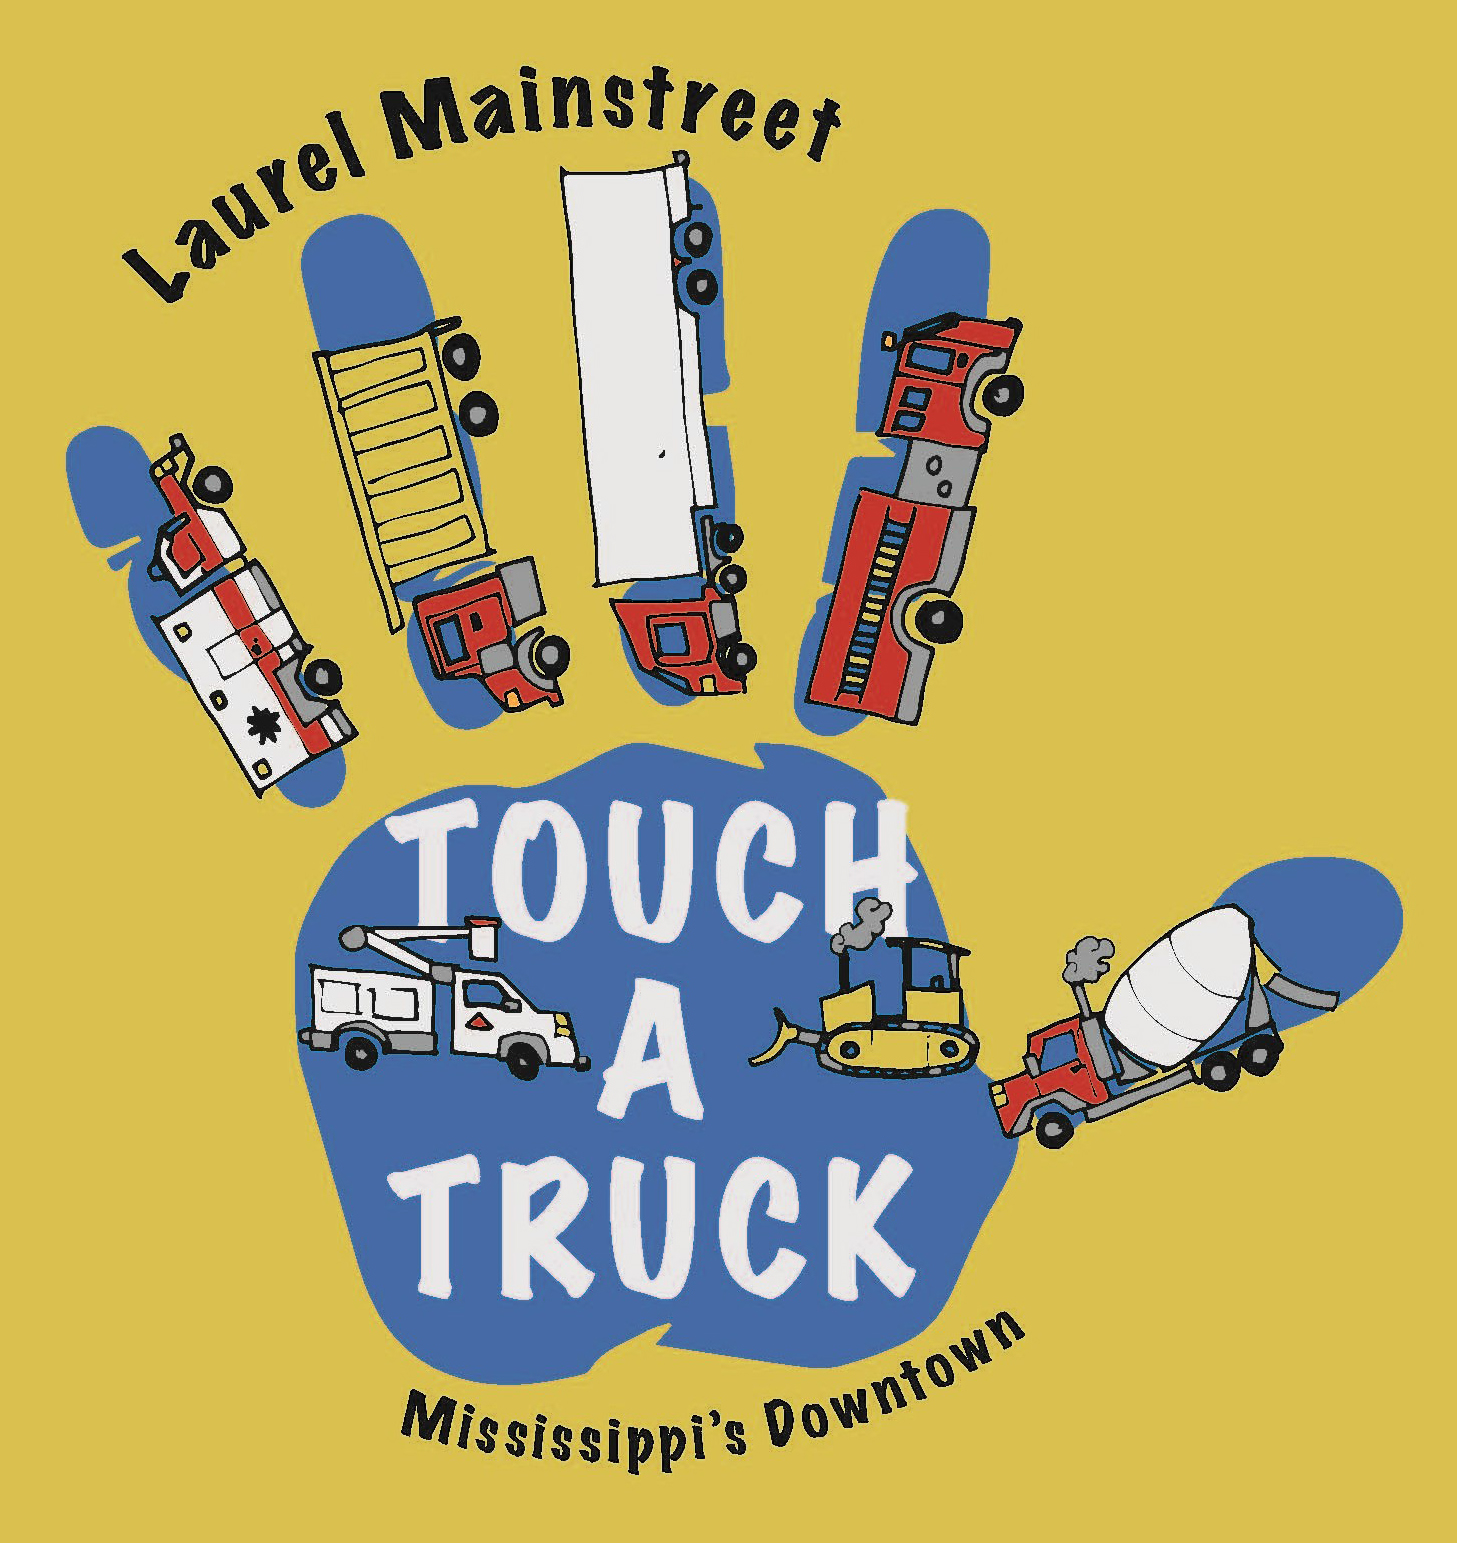 The City of Laurel, Touch A Truck